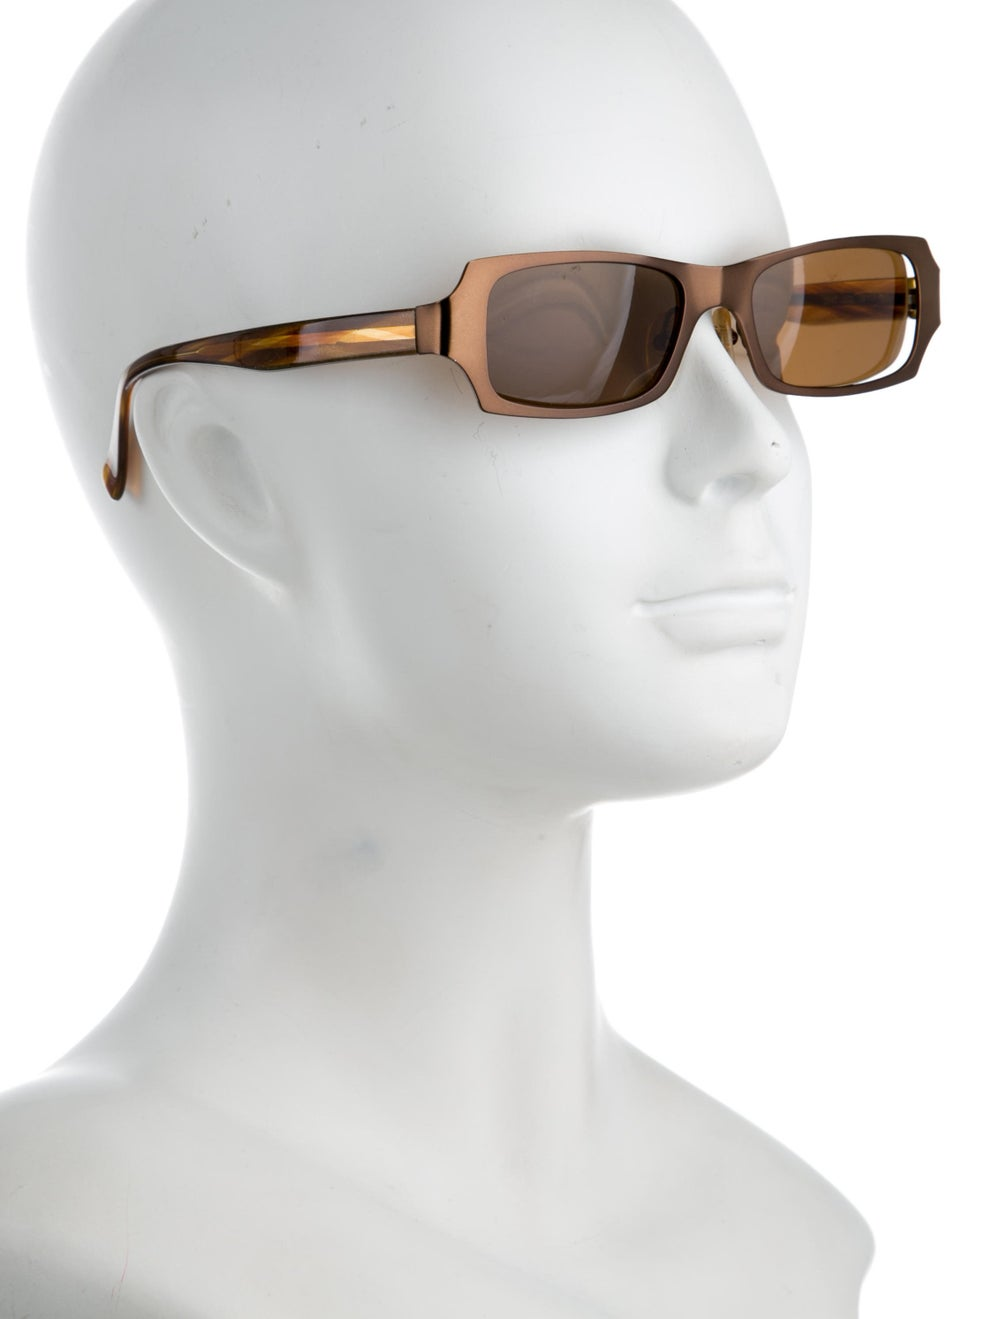 Alain Mikli Tinted Narrow Sunglasses Brown - image 4